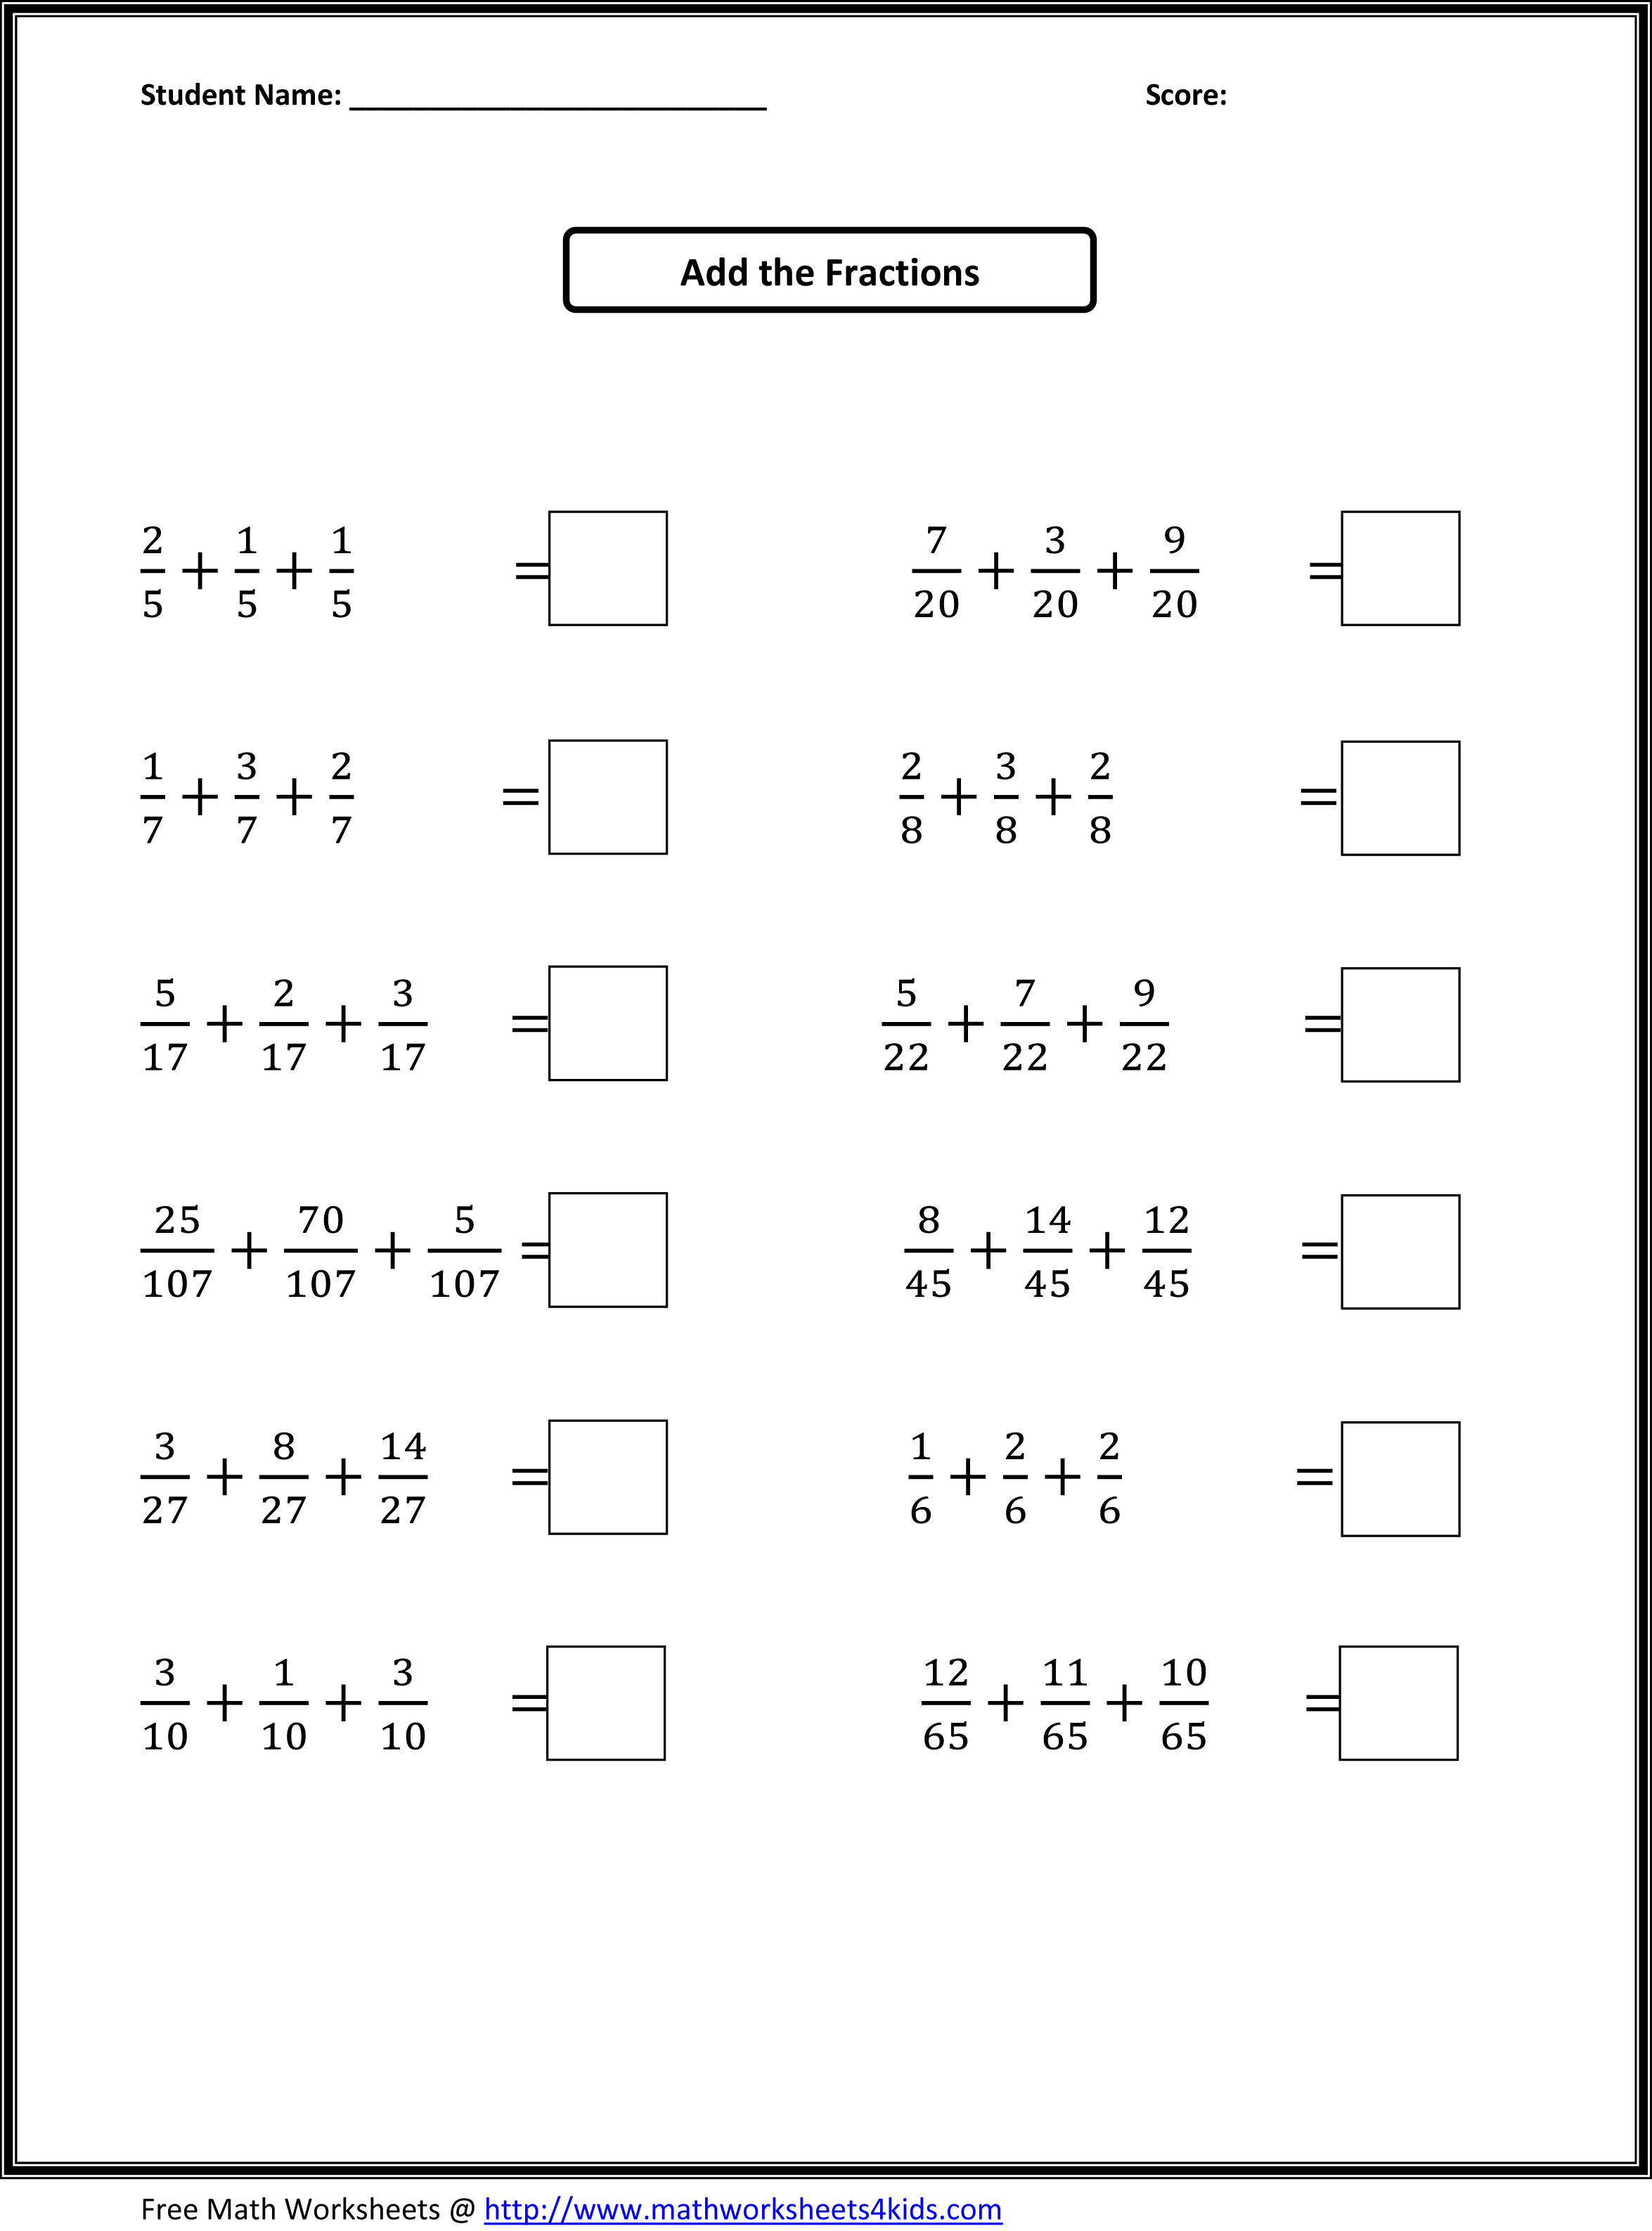 Maths Worksheets On Fractions For Grade 5 Worksheet Kids – Maths Worksheets for Grade 4 on Fractions